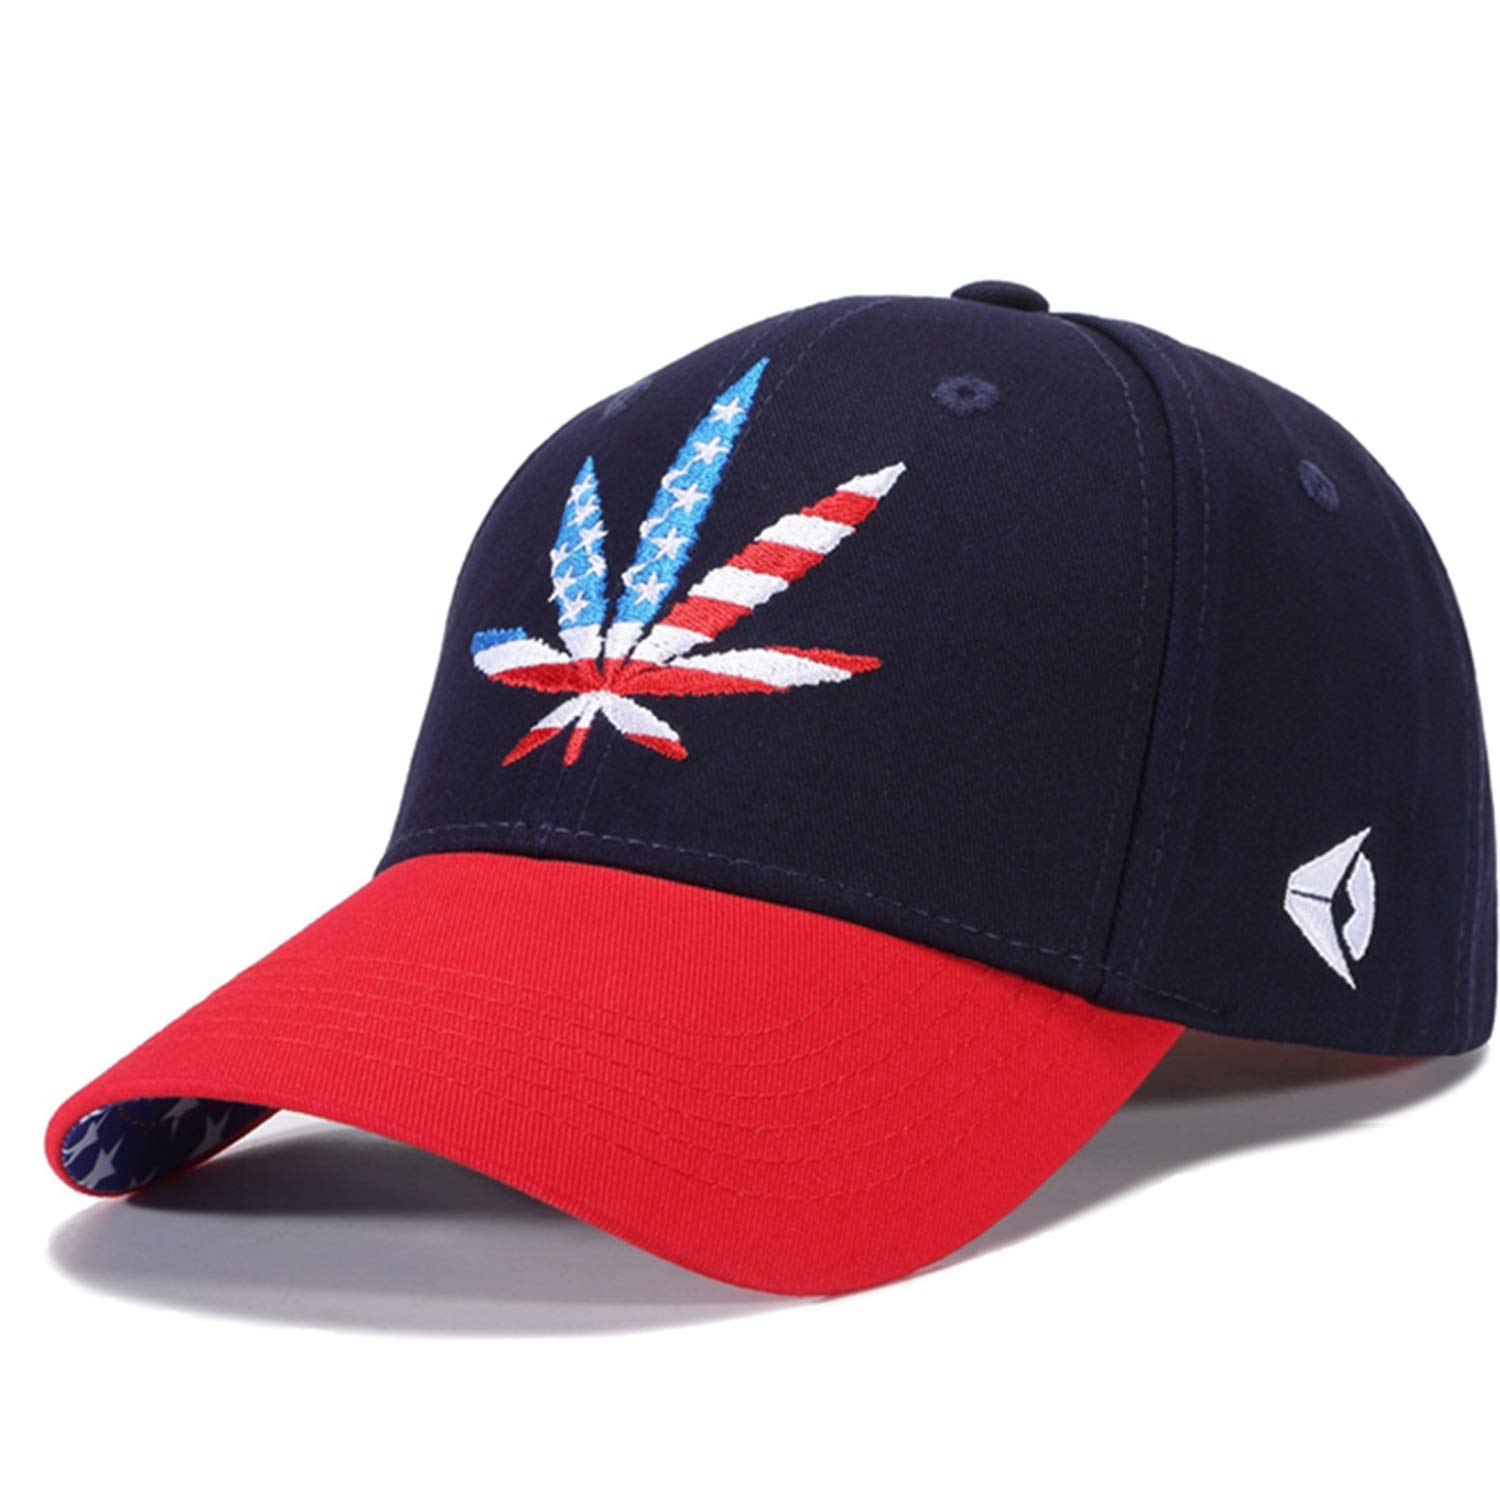 fa92b7663ce WUKE Quality Cotton Floral Embroidery Casual Hats Men Women ...